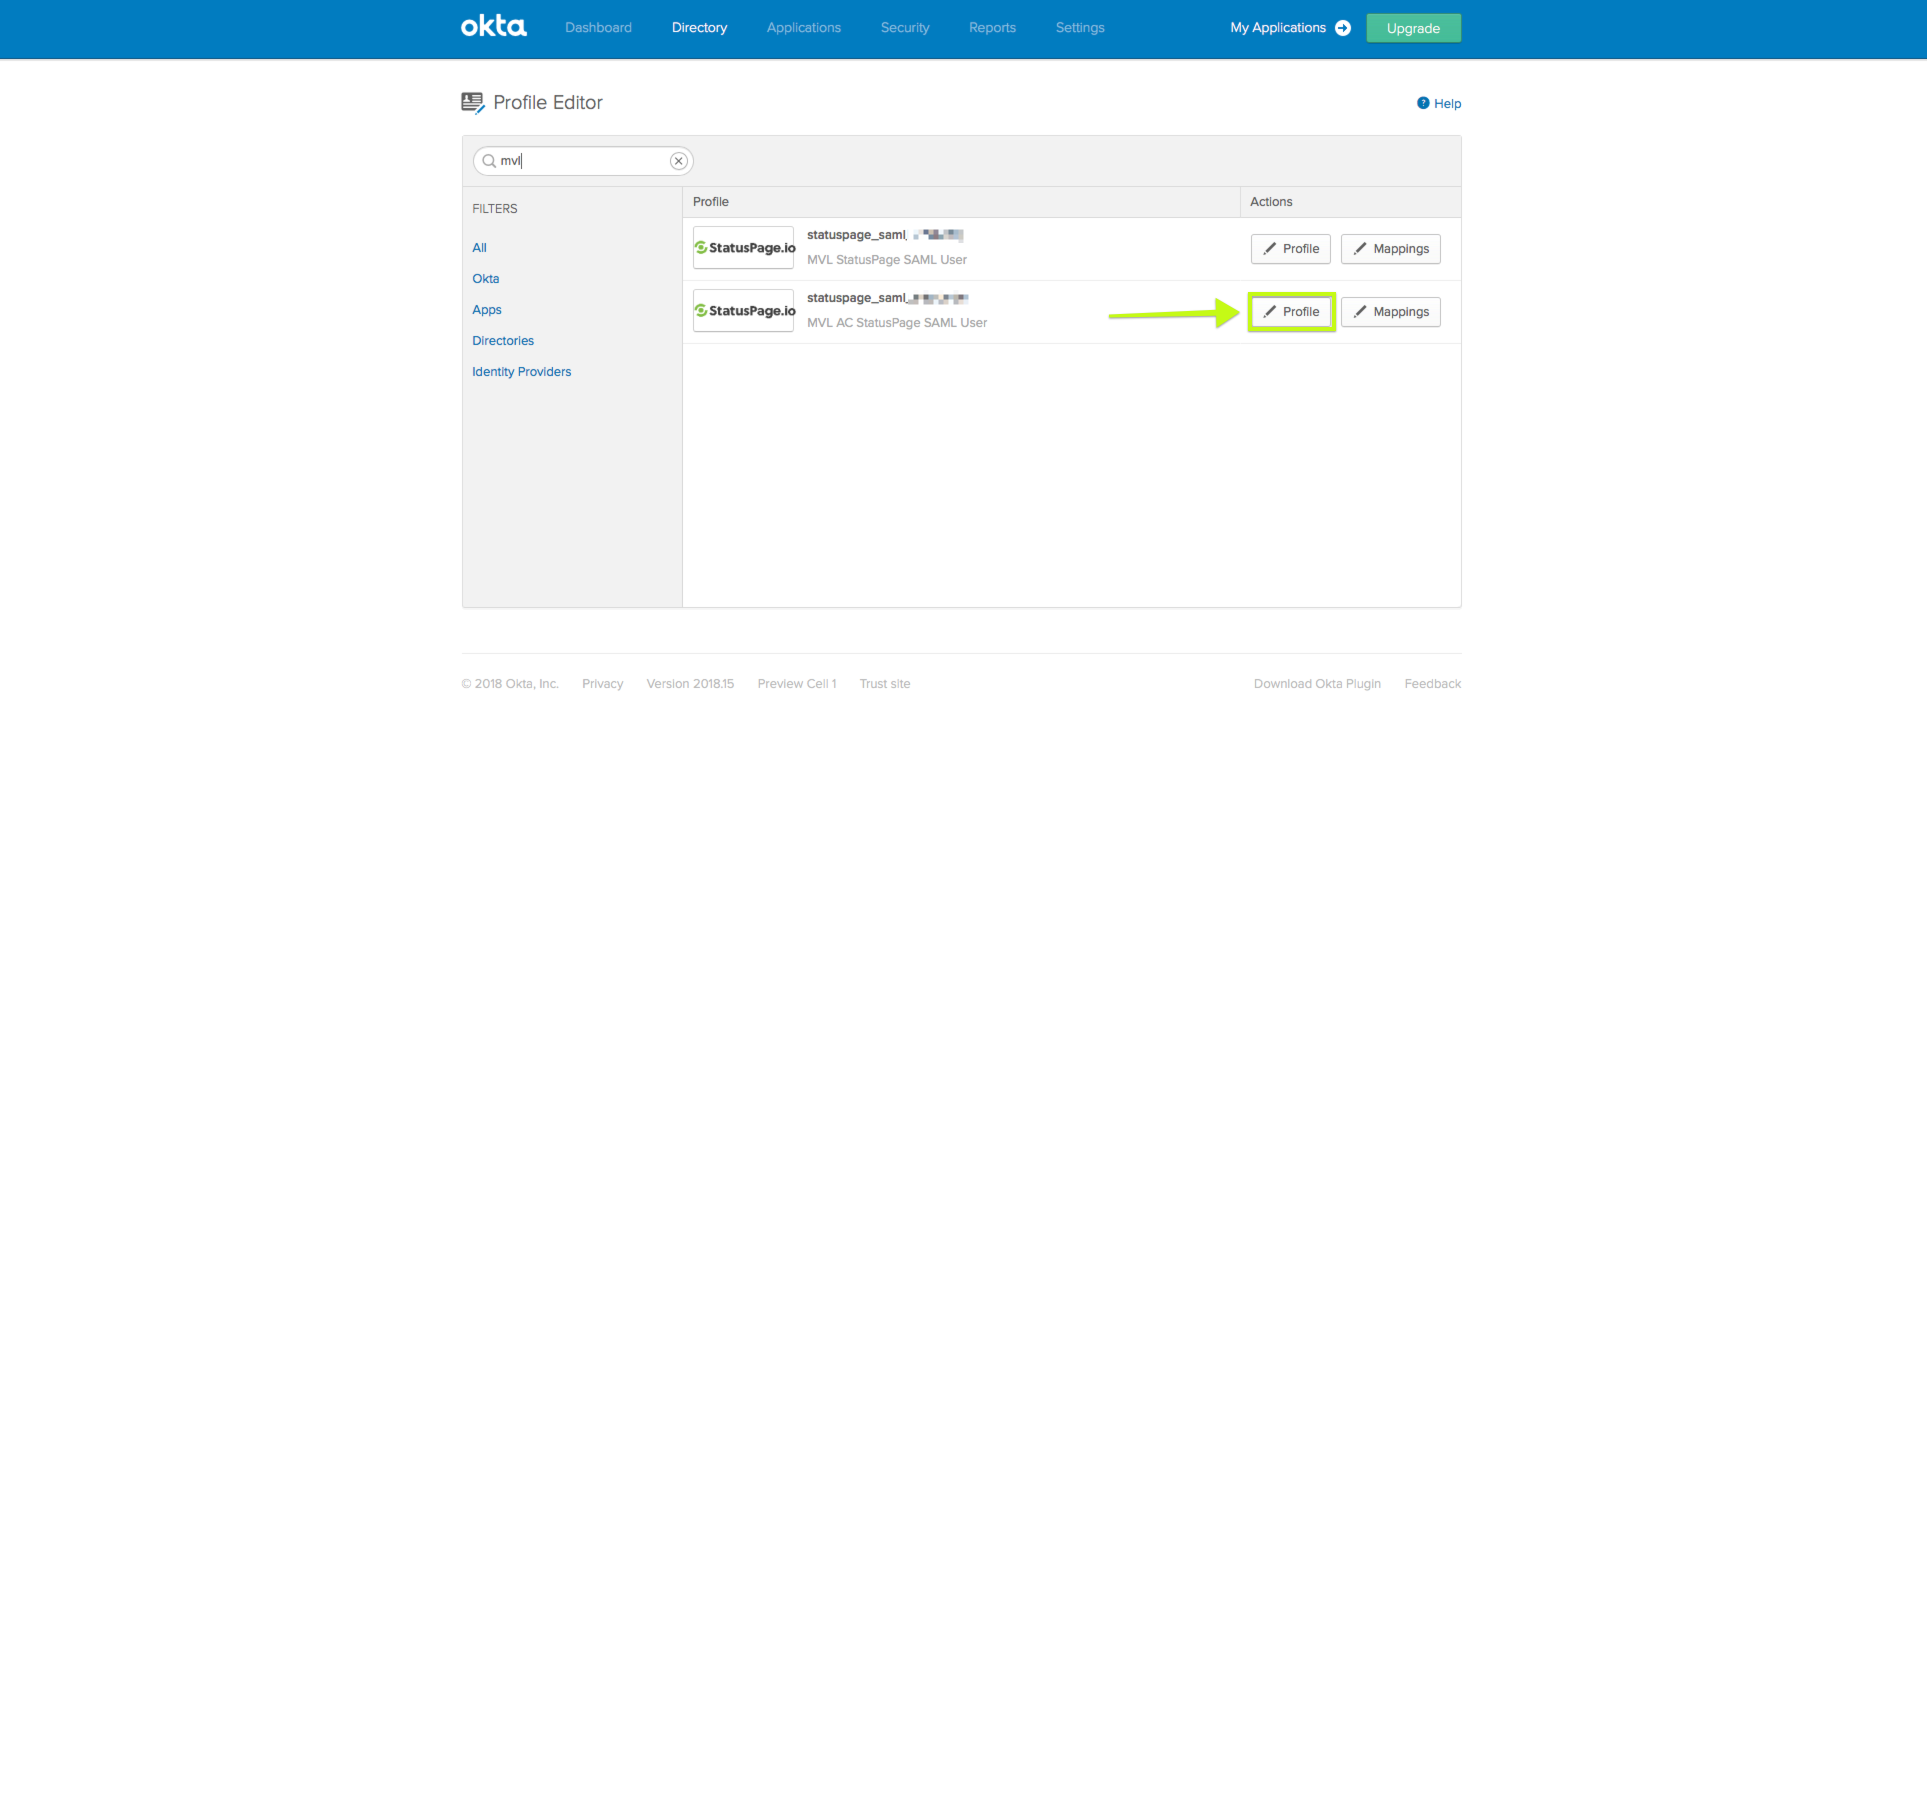 Okta setup for audience-specific users